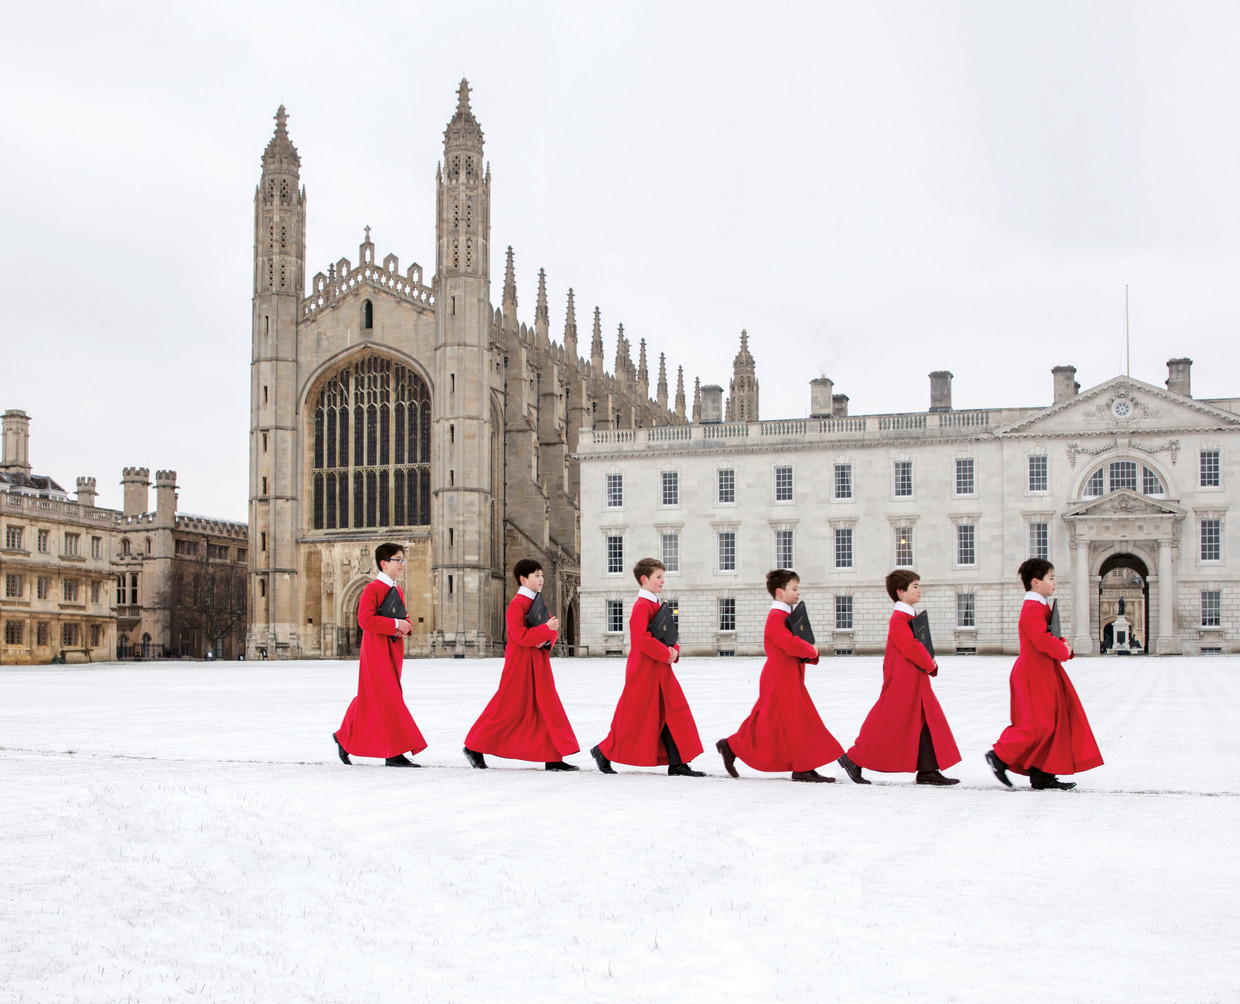 The Choir of King's College Beeld